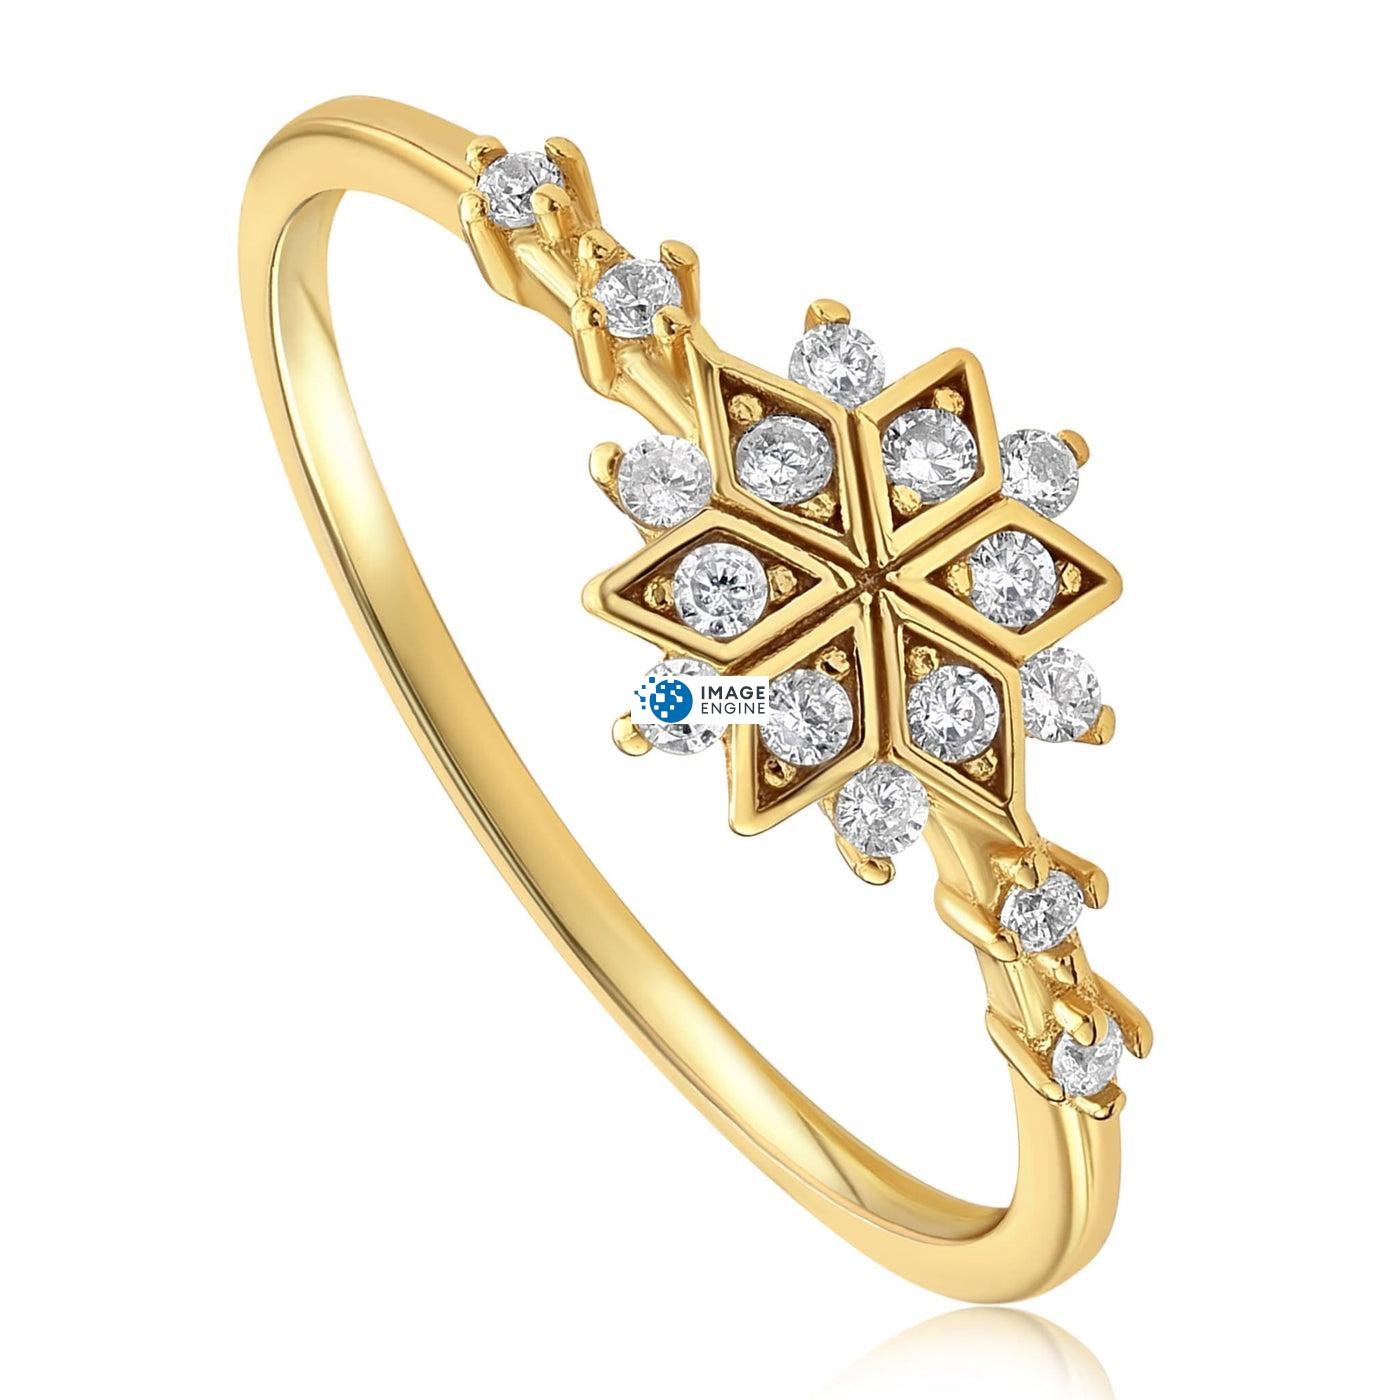 Sophia Snowflake Ring - Three Quarter View - 18K Yellow Gold Vermeil